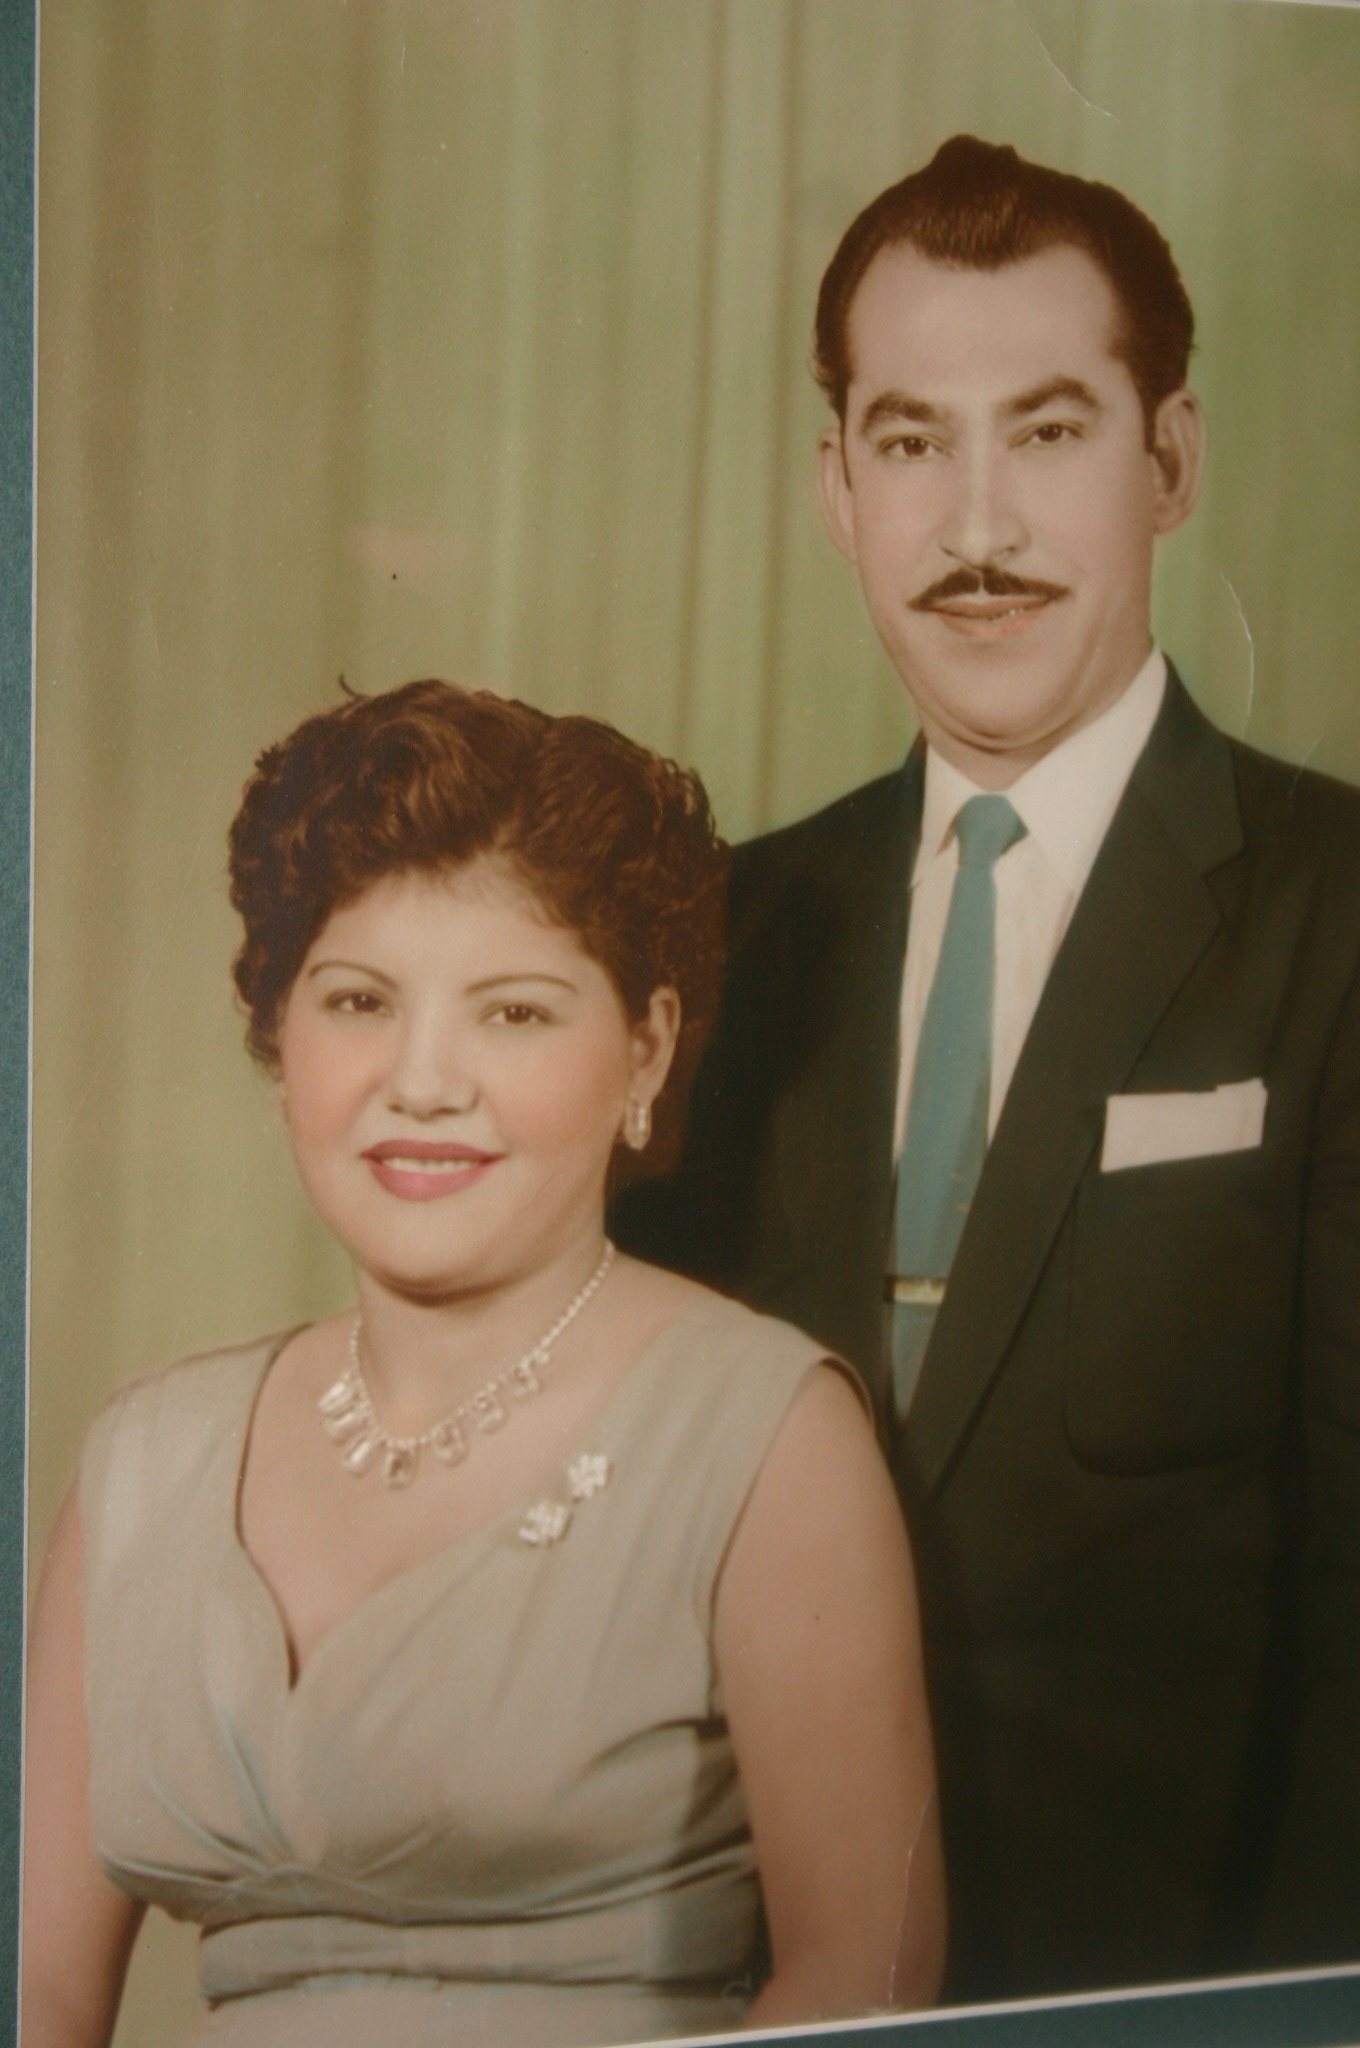 Agapito & Odilia: The early years